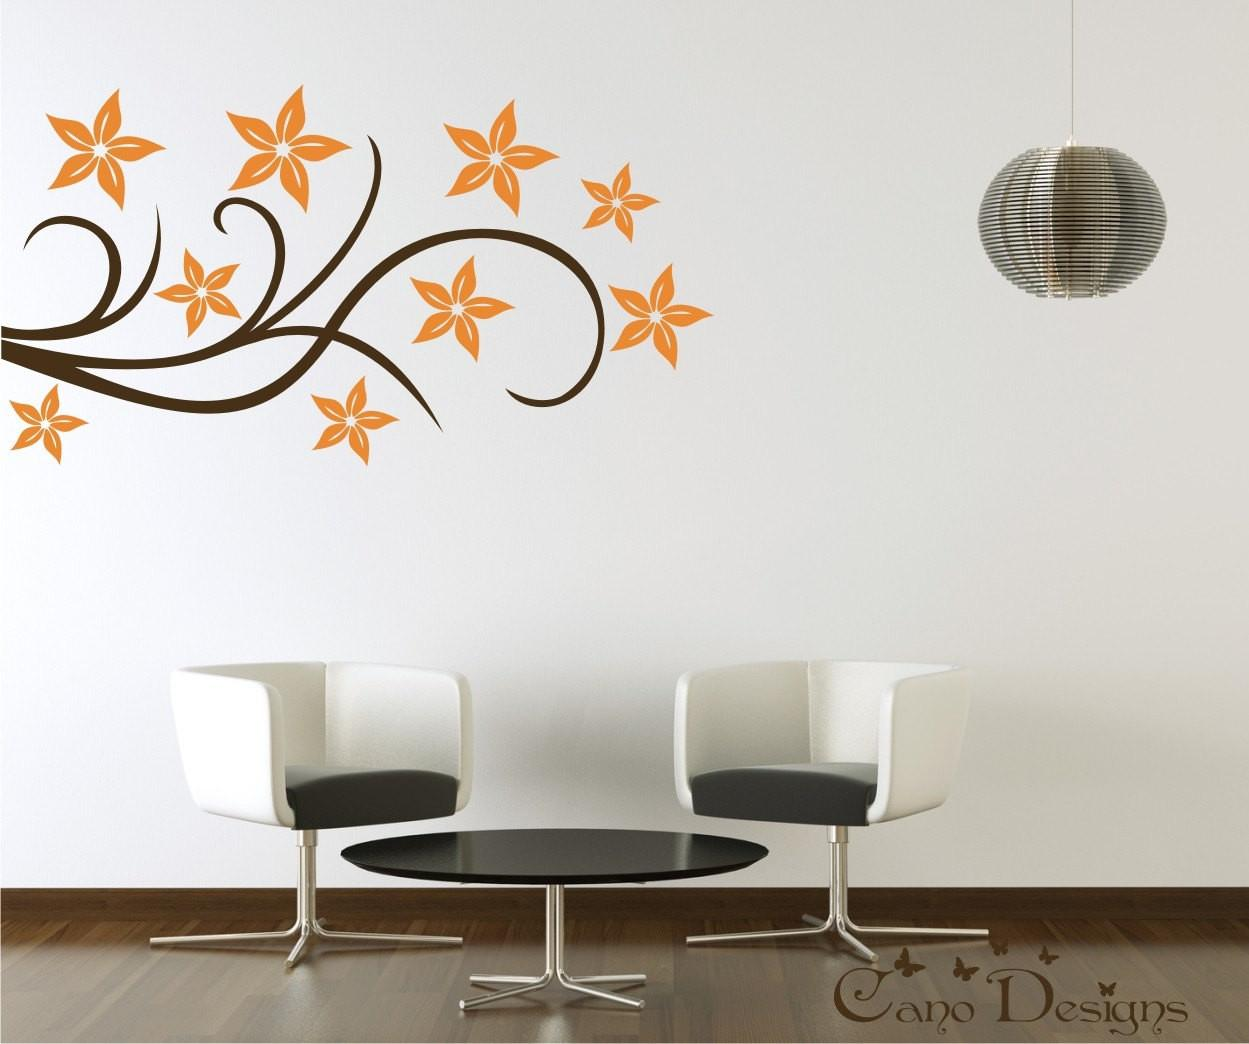 Floral Design Vinyl Decal Wall Decals Stickers Canodesigns